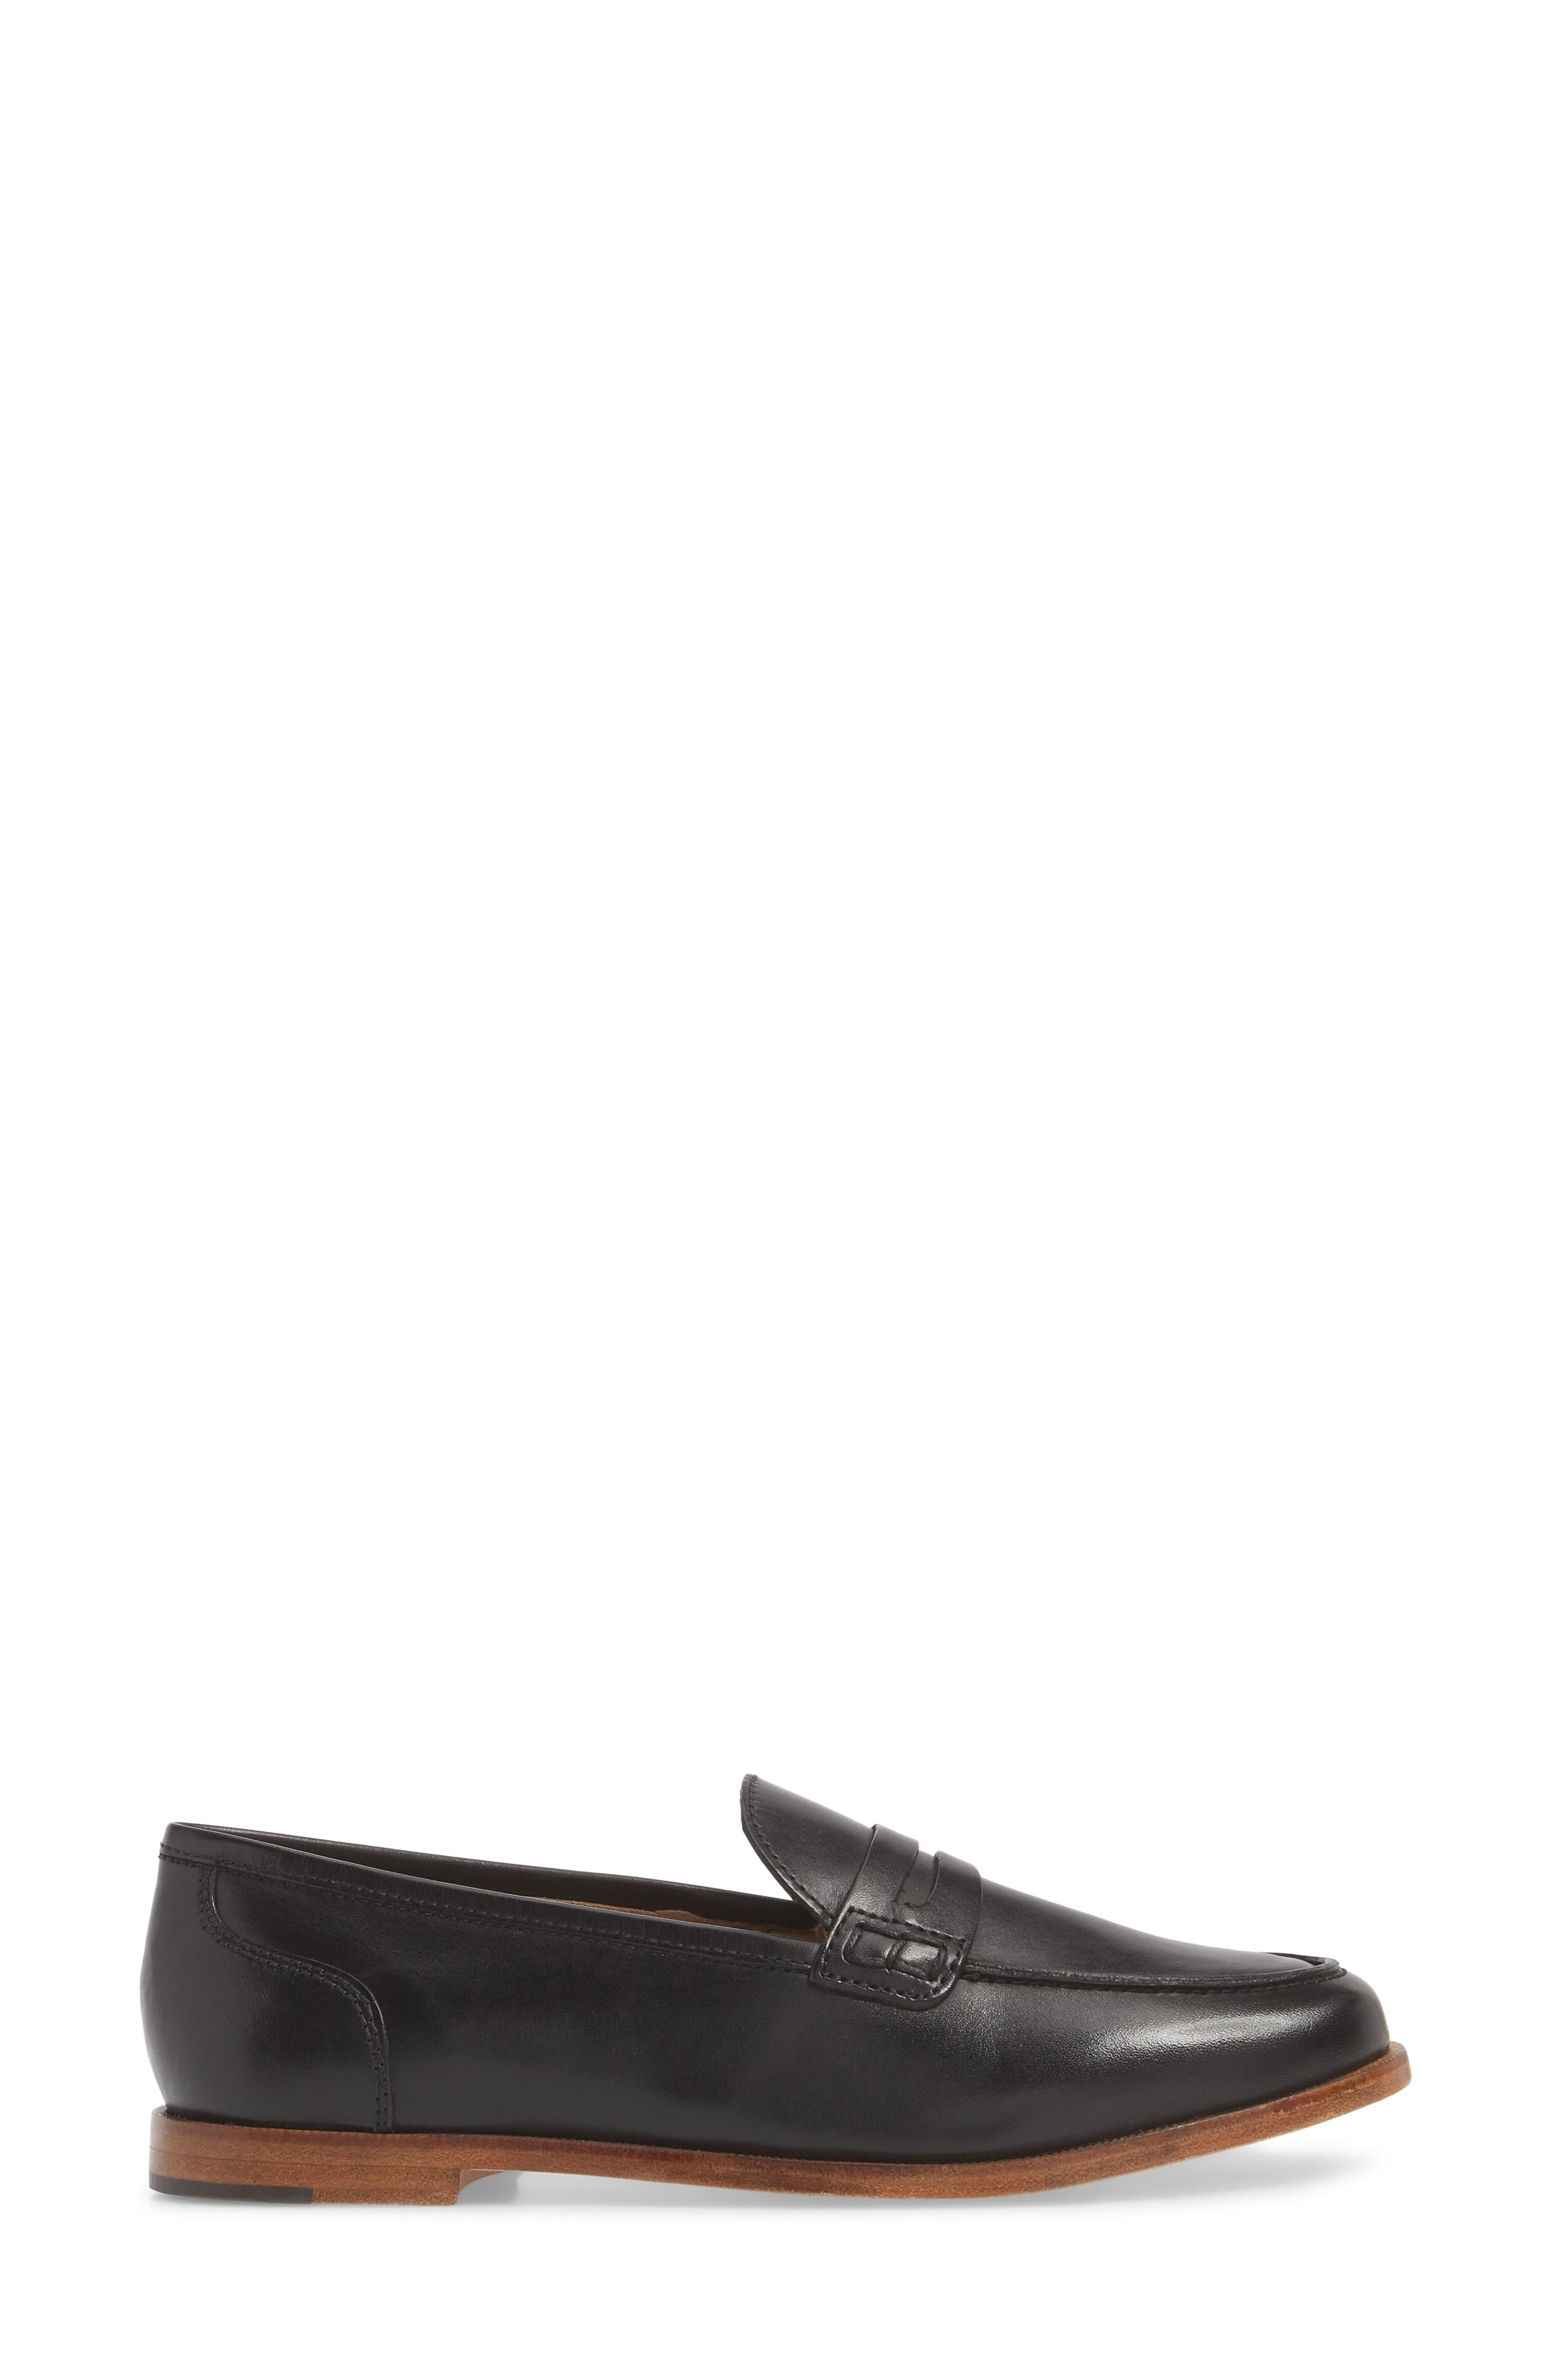 J.CREW, Ryan Penny Loafer, Alternate thumbnail 3, color, BLACK LEATHER